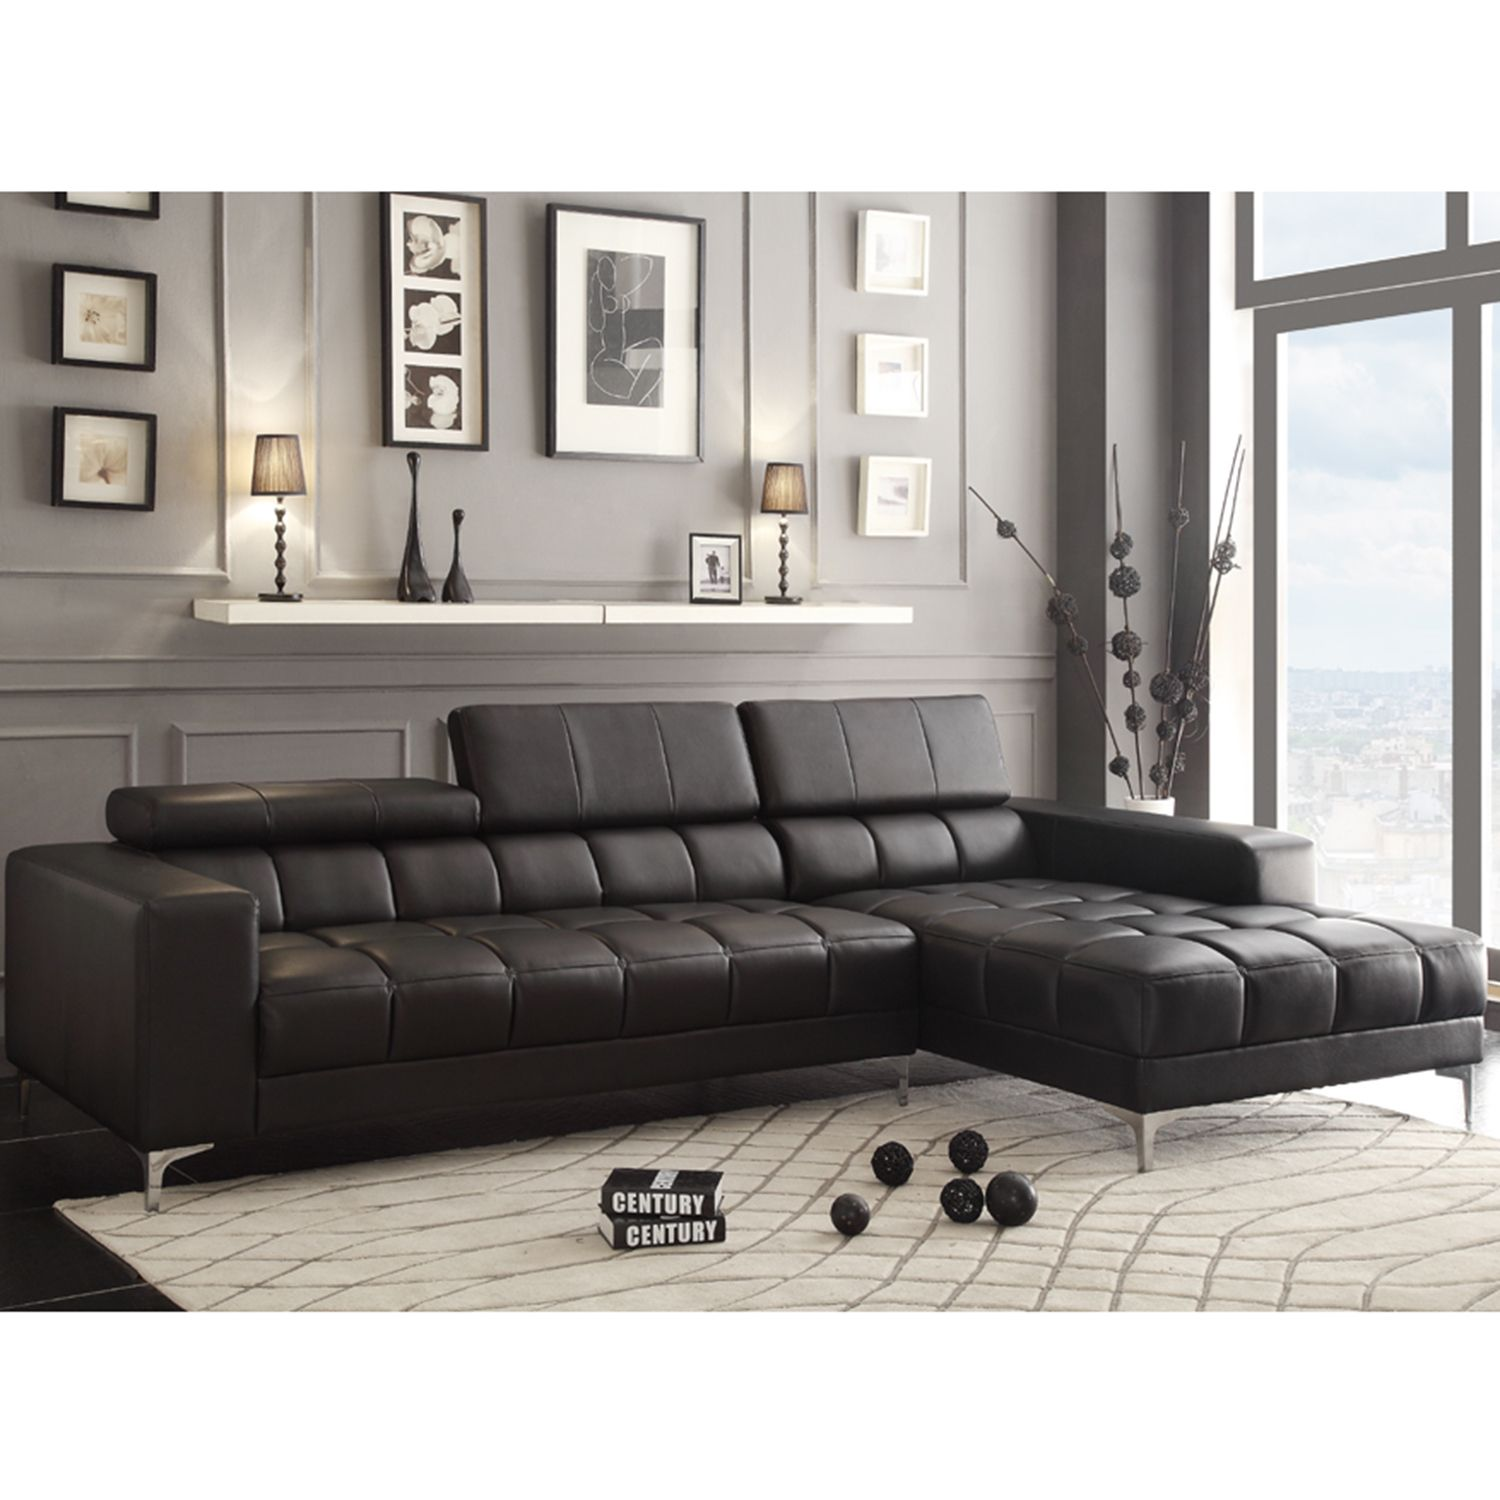 Leather Sofa Lark Black Bonded Leather Sectional With Adjustable Headrest And Chaise